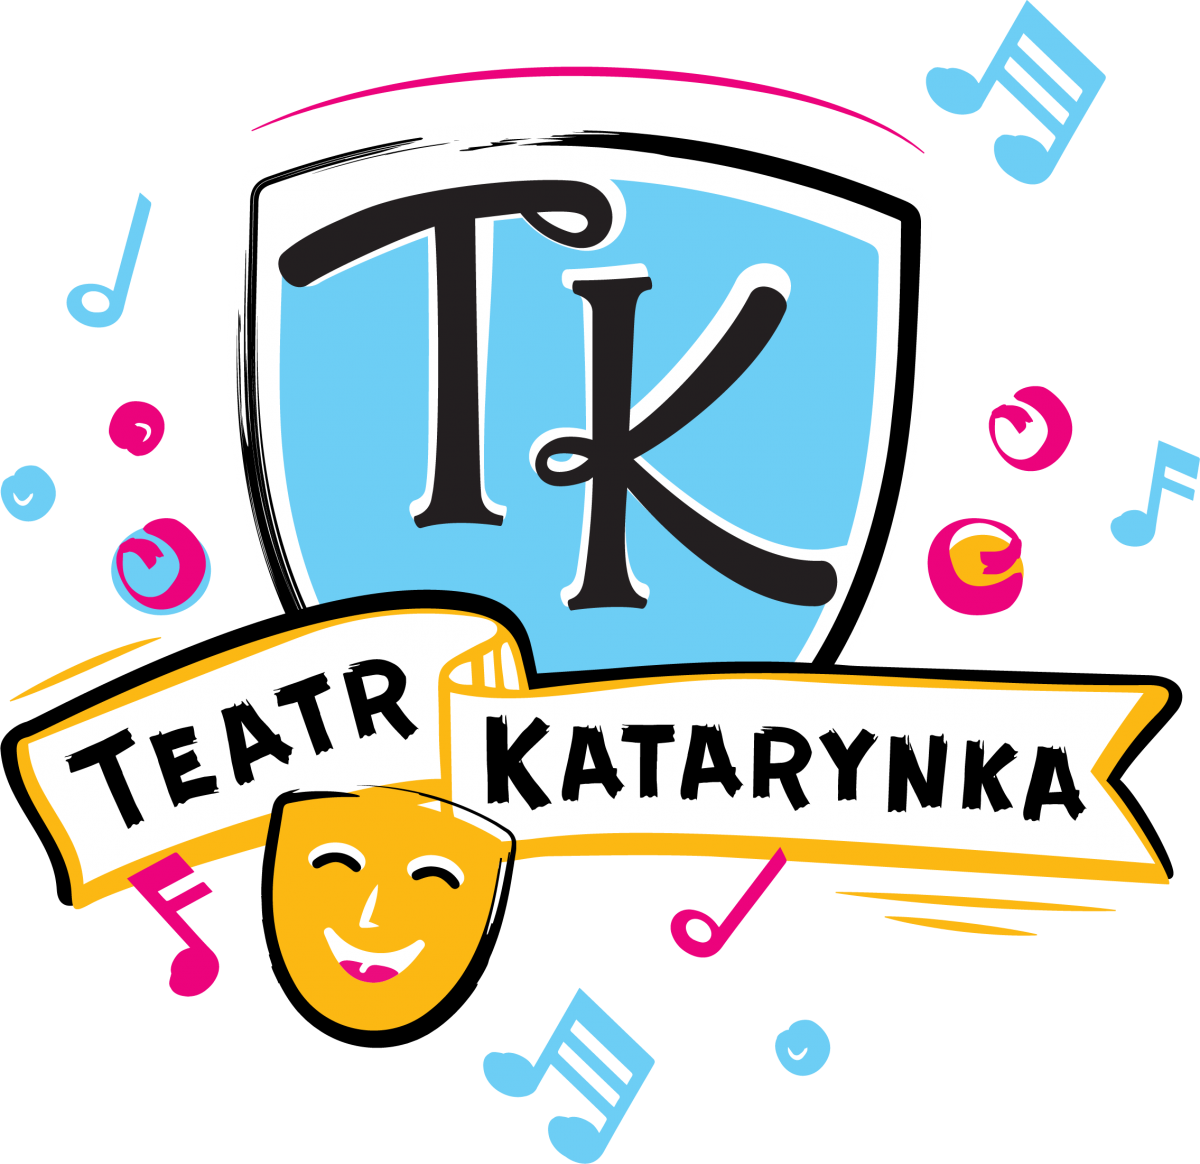 4. Teatr Katarynka_ Logo_FOR BLACK BACKGROUND.png